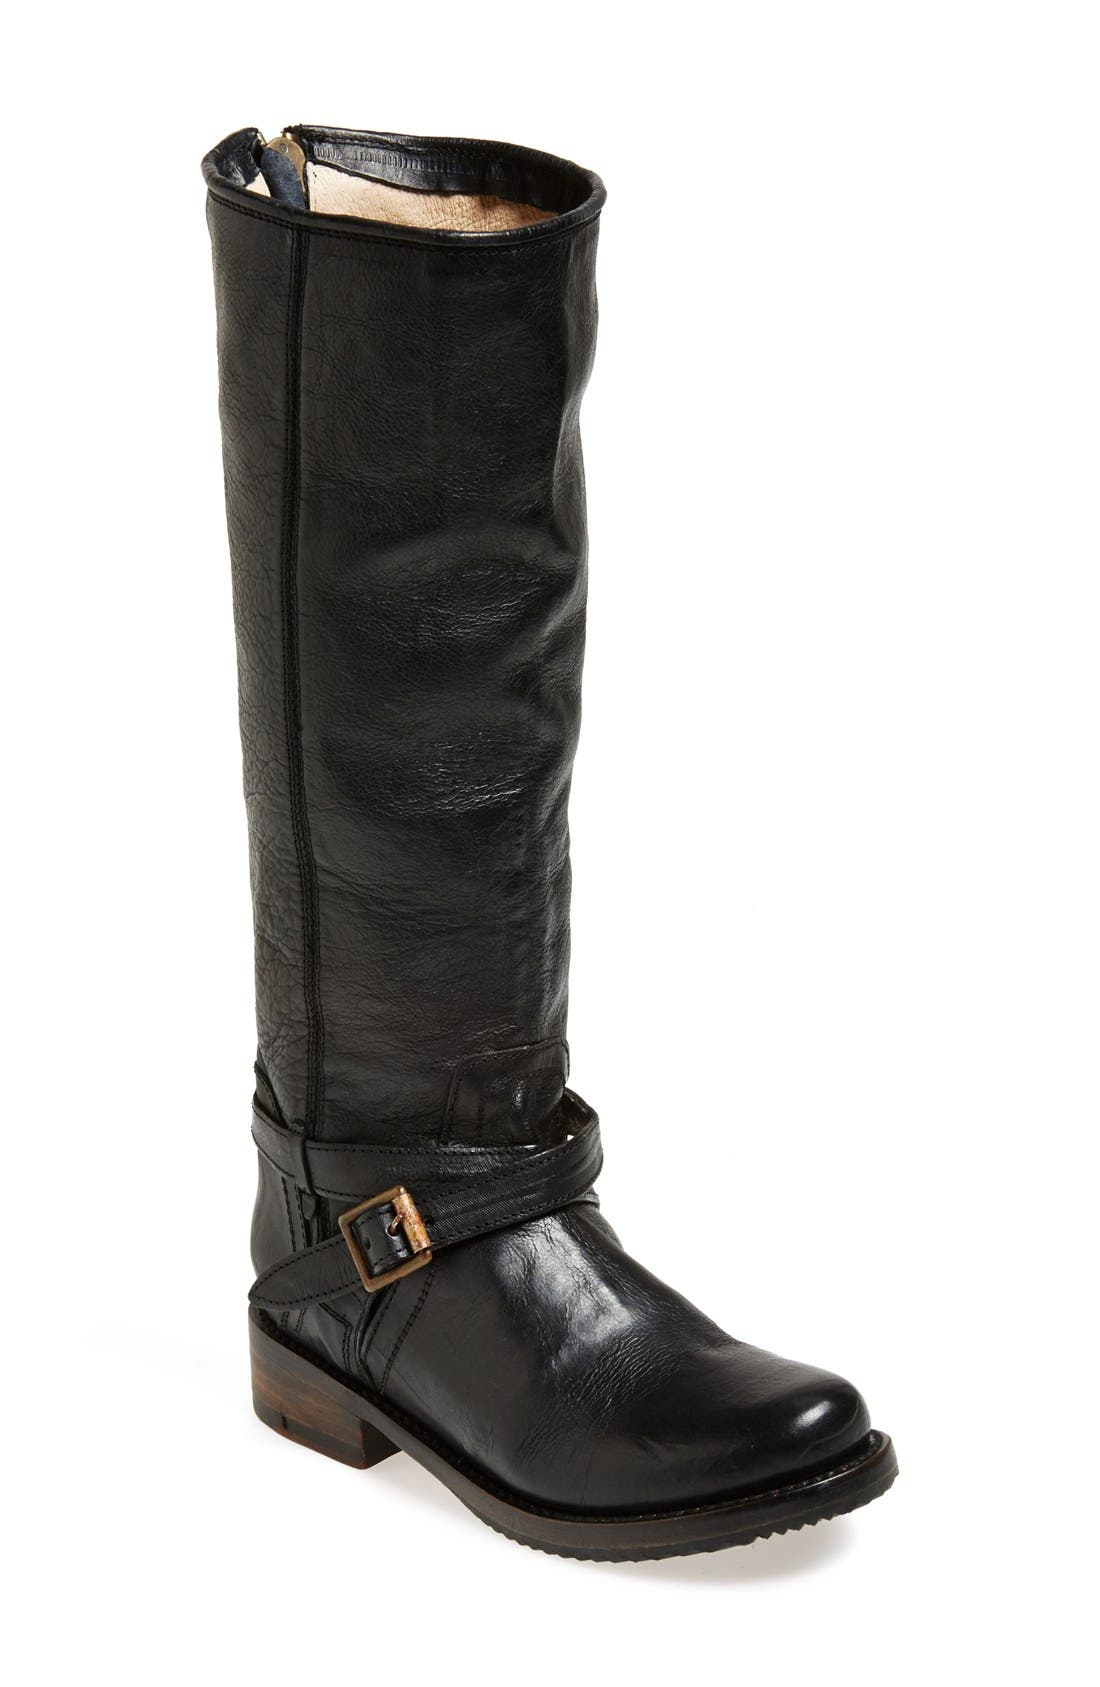 Alternate Image 1 Selected - Freebird by Steven 'Shadow' Distressed Leather Tall Boot (Women)